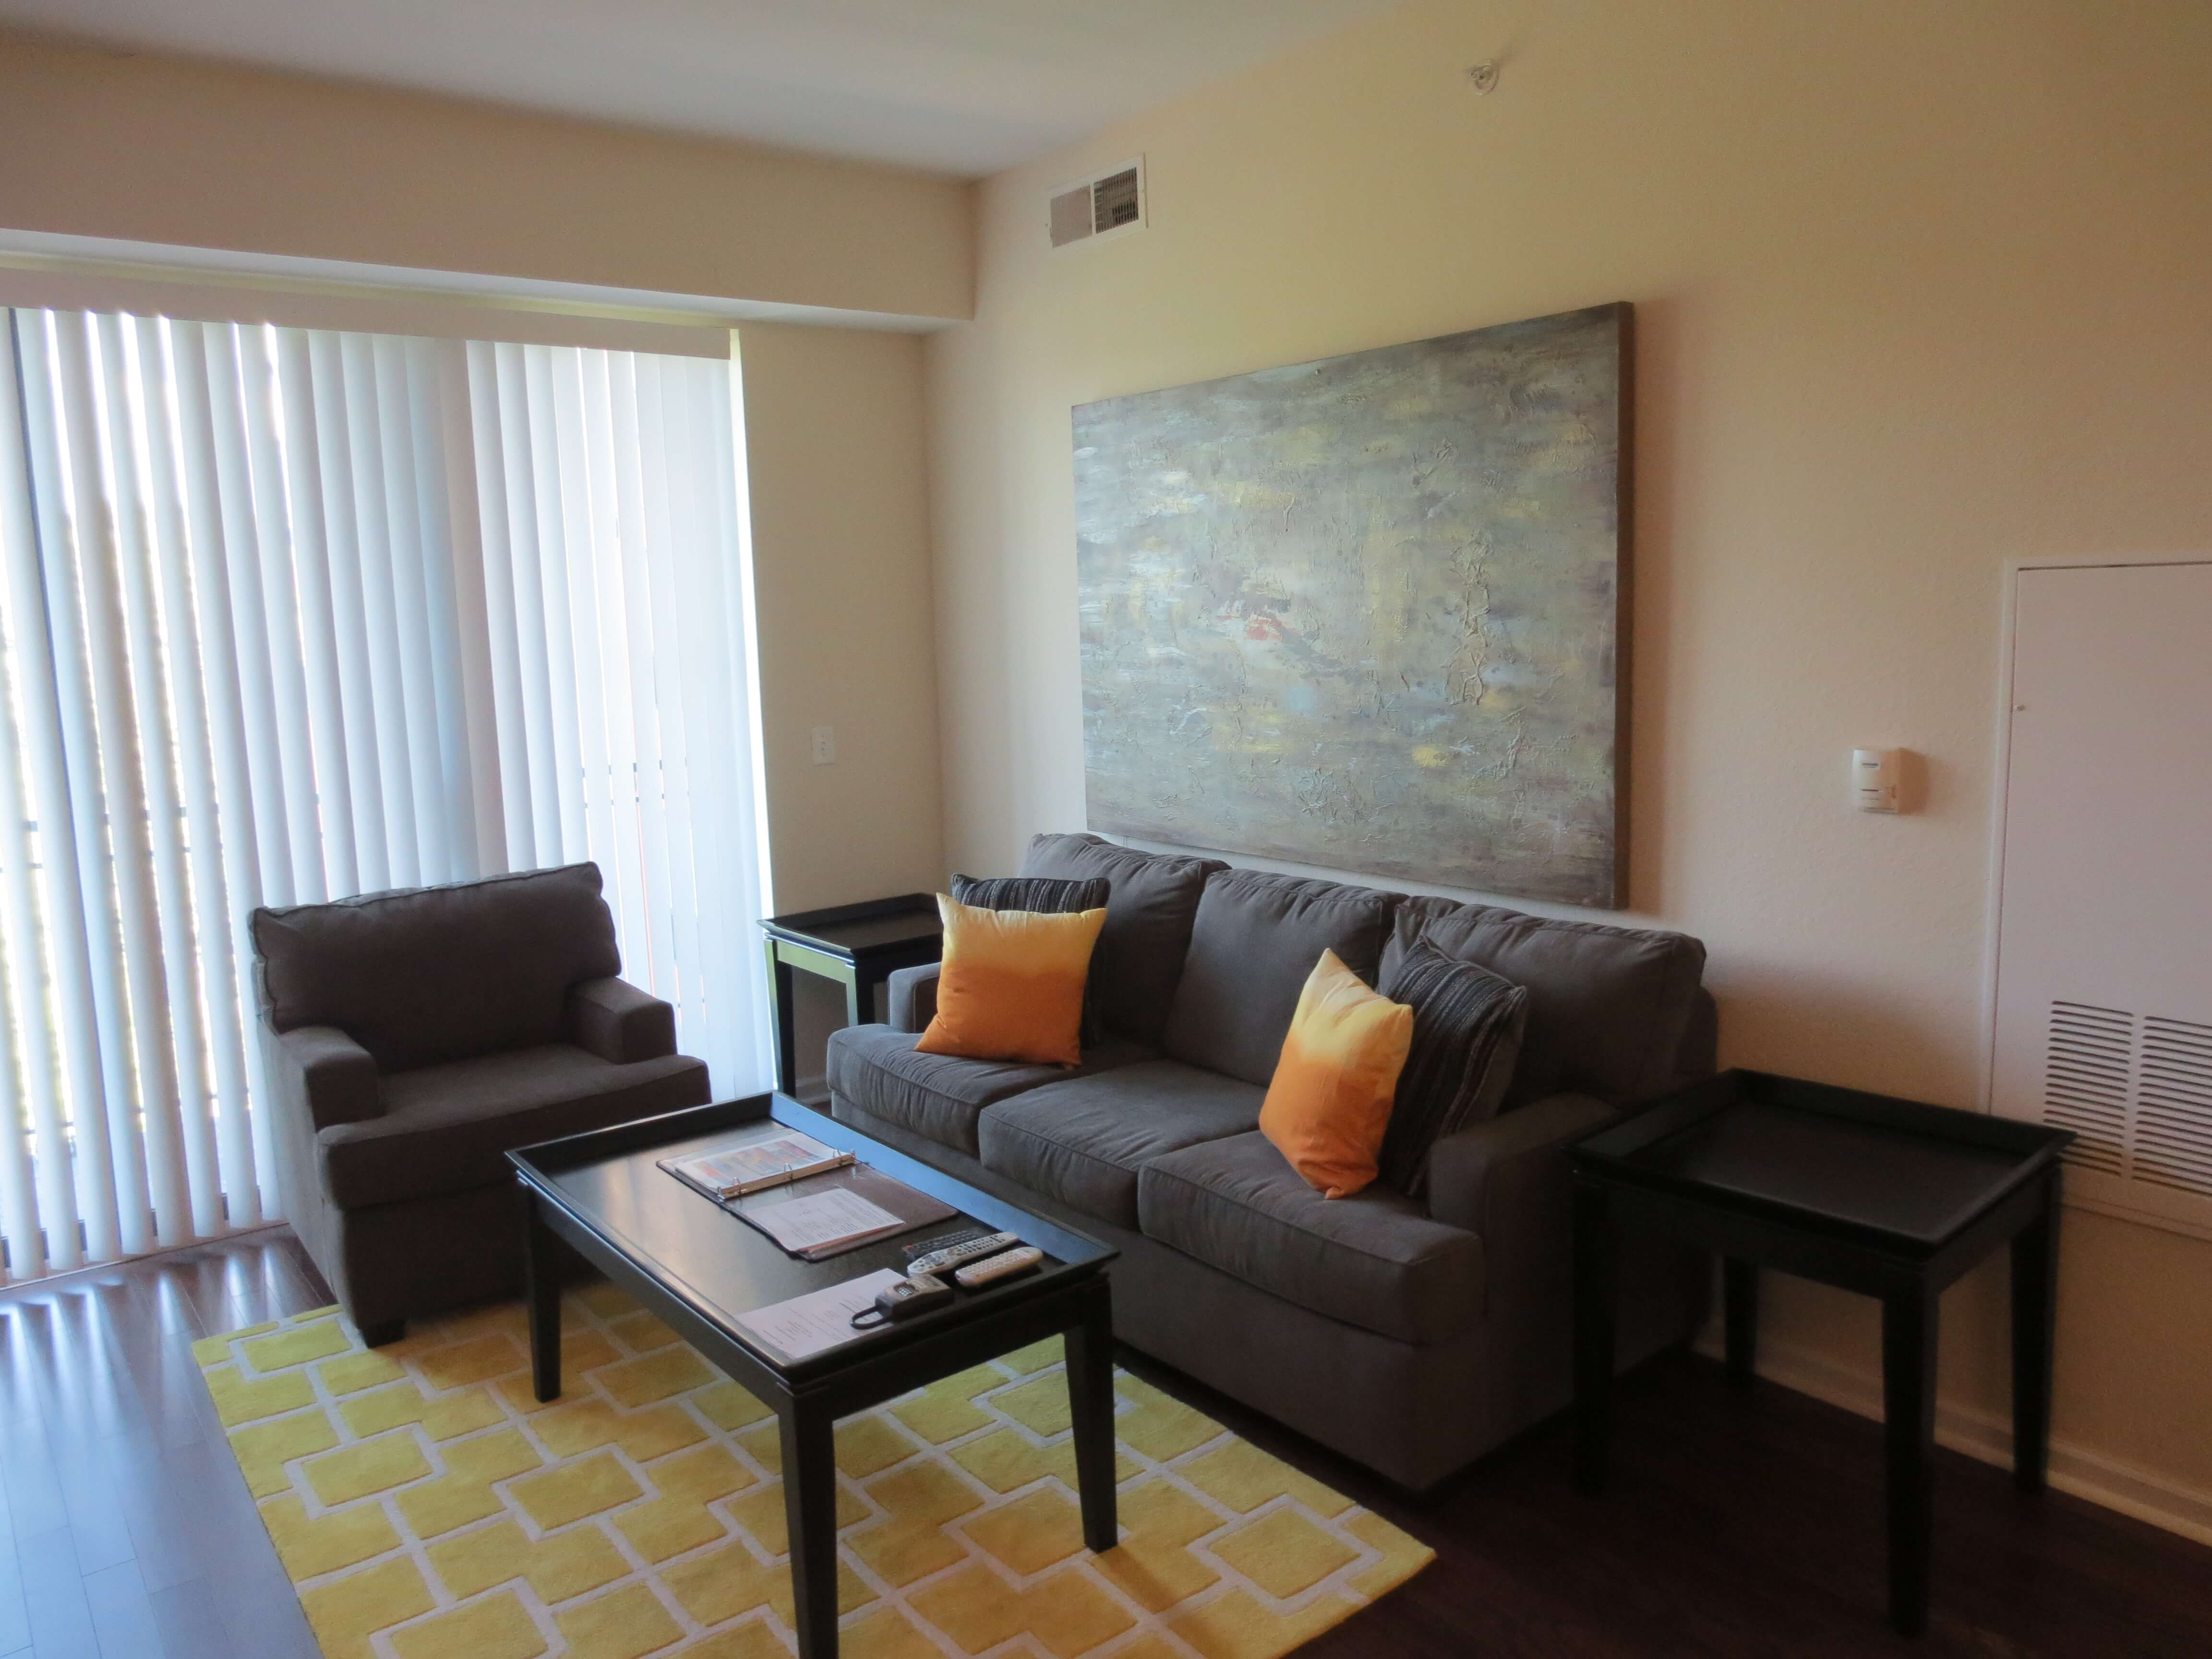 furnished 1 bedroom apartment for rent in norwalk southwest ct